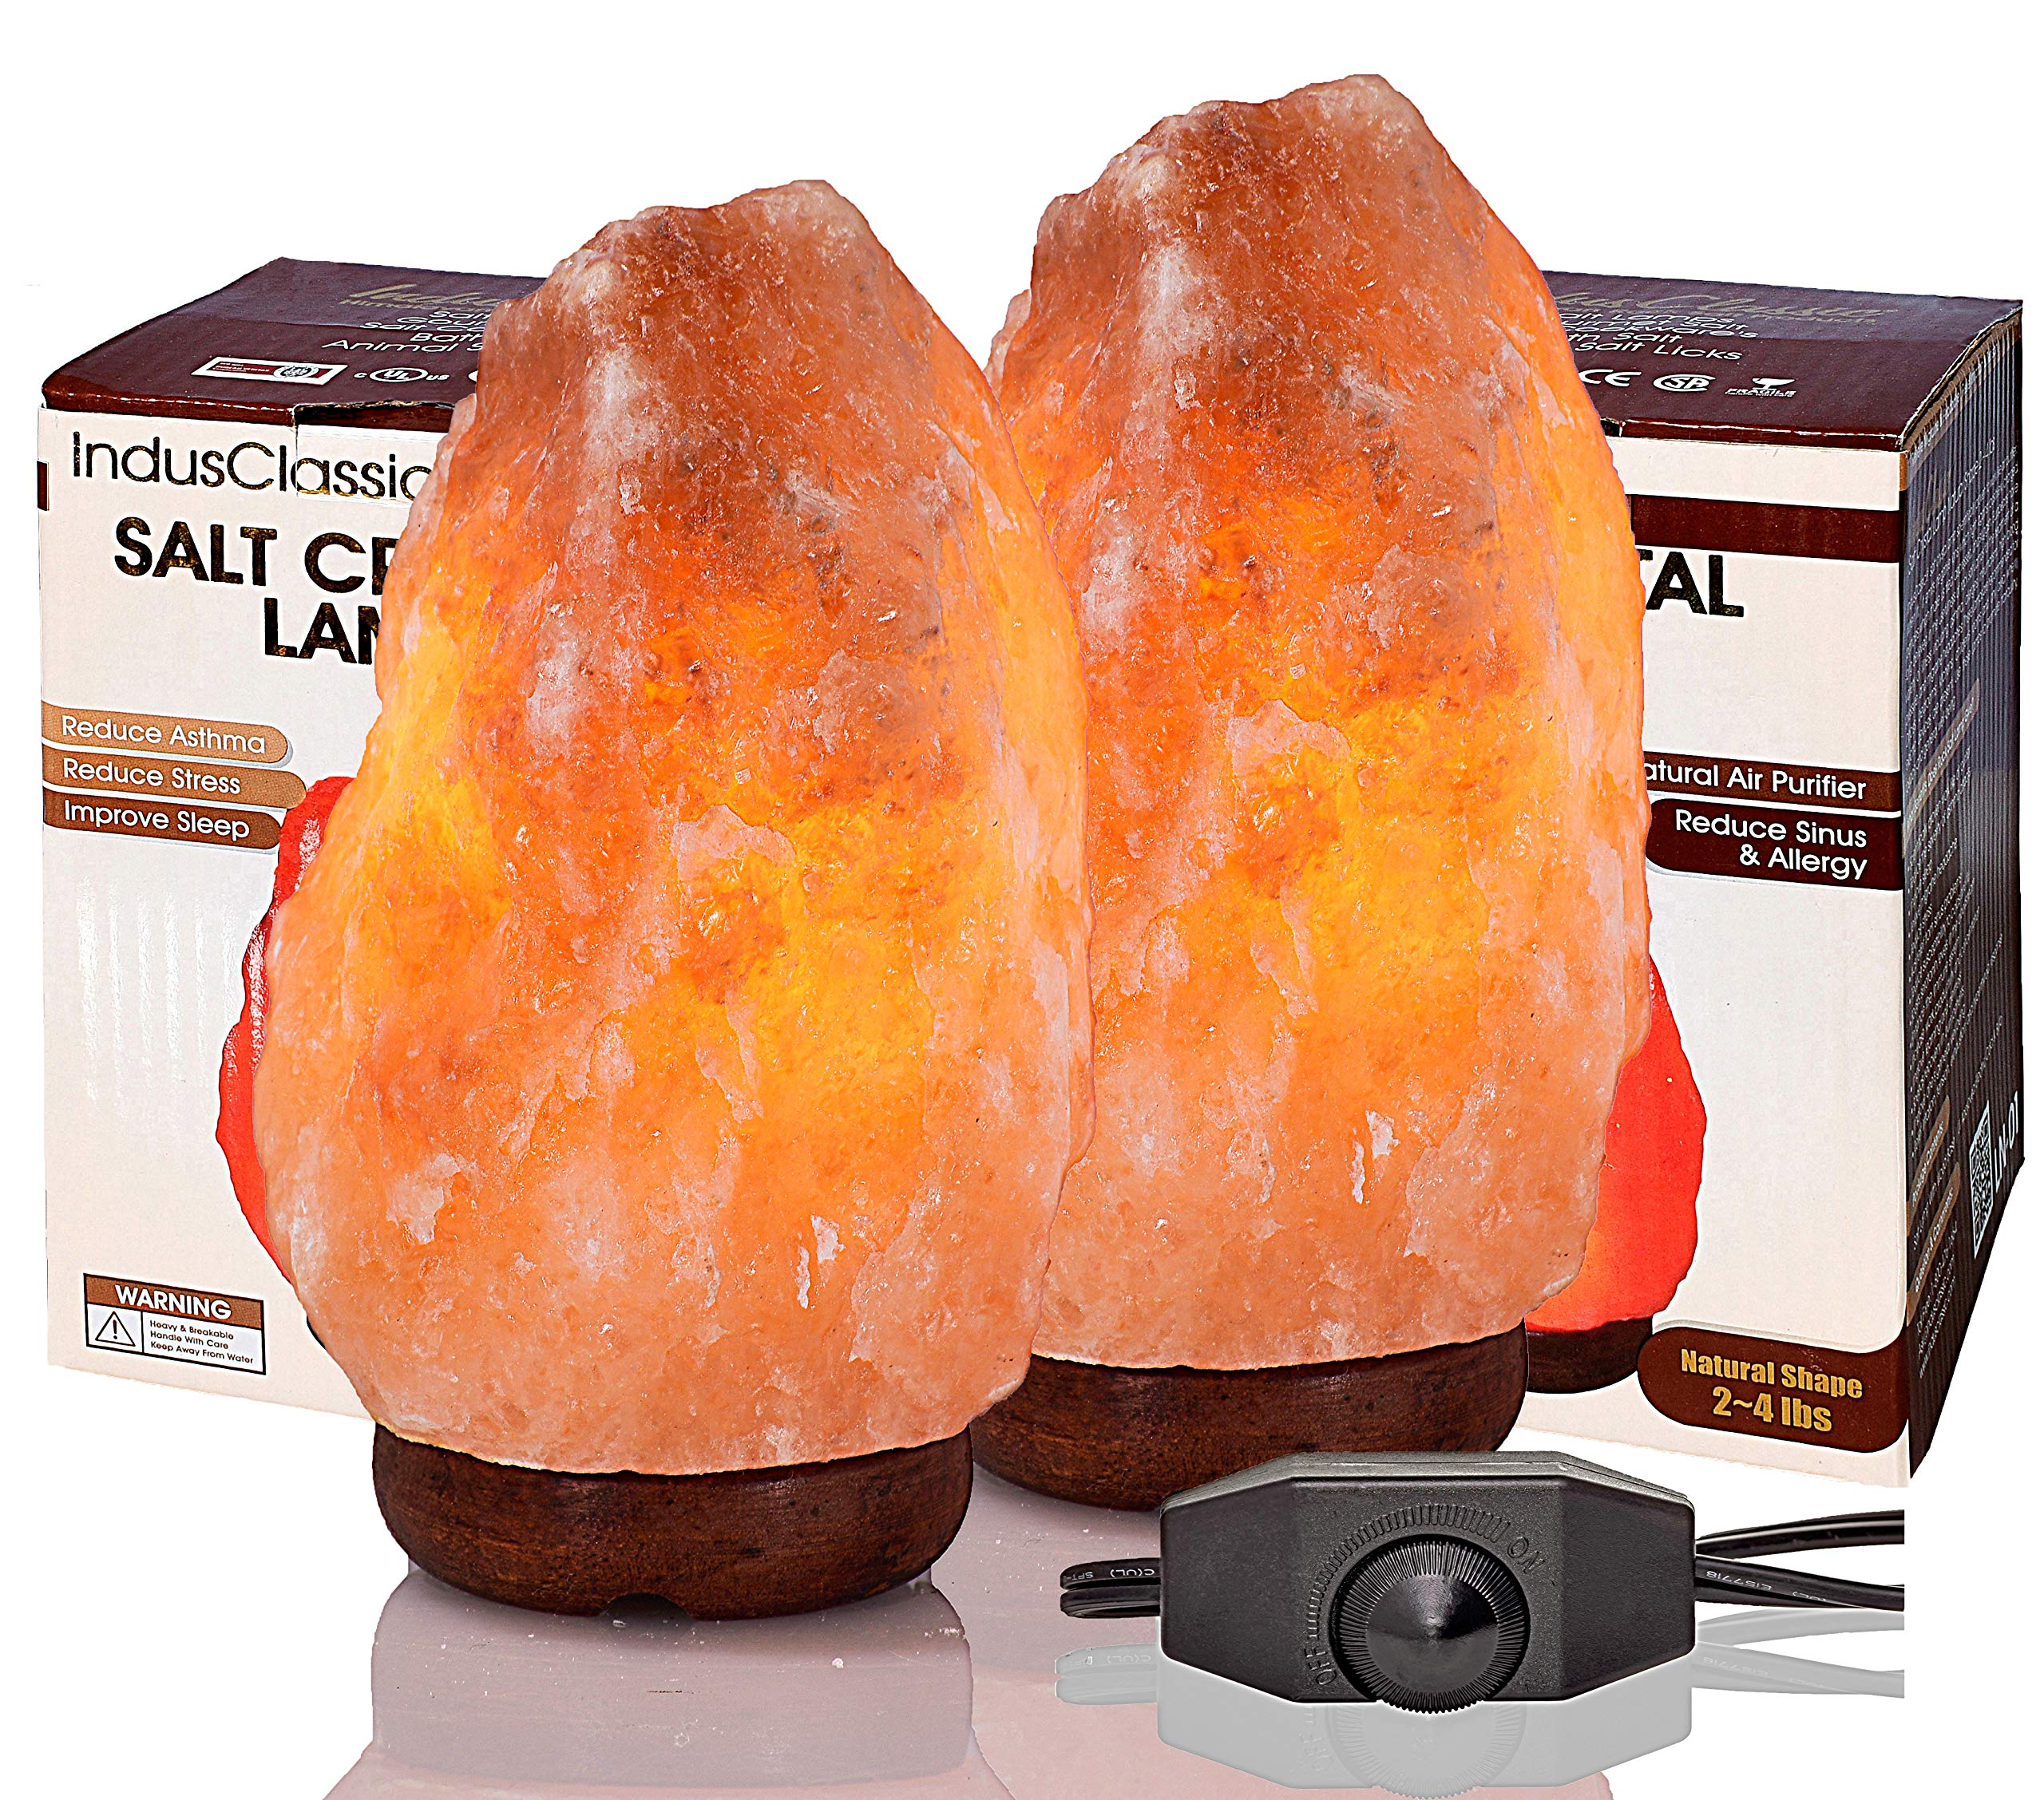 IndusClassic Pack of 2 Natural Himalayan Crystal Rock Salt Lamp Ionizer Air Purifier 2~4 lbs/UL Listed Cord and Dimmer Control Switch, Exceptional Quality Packaging by IndusClassic